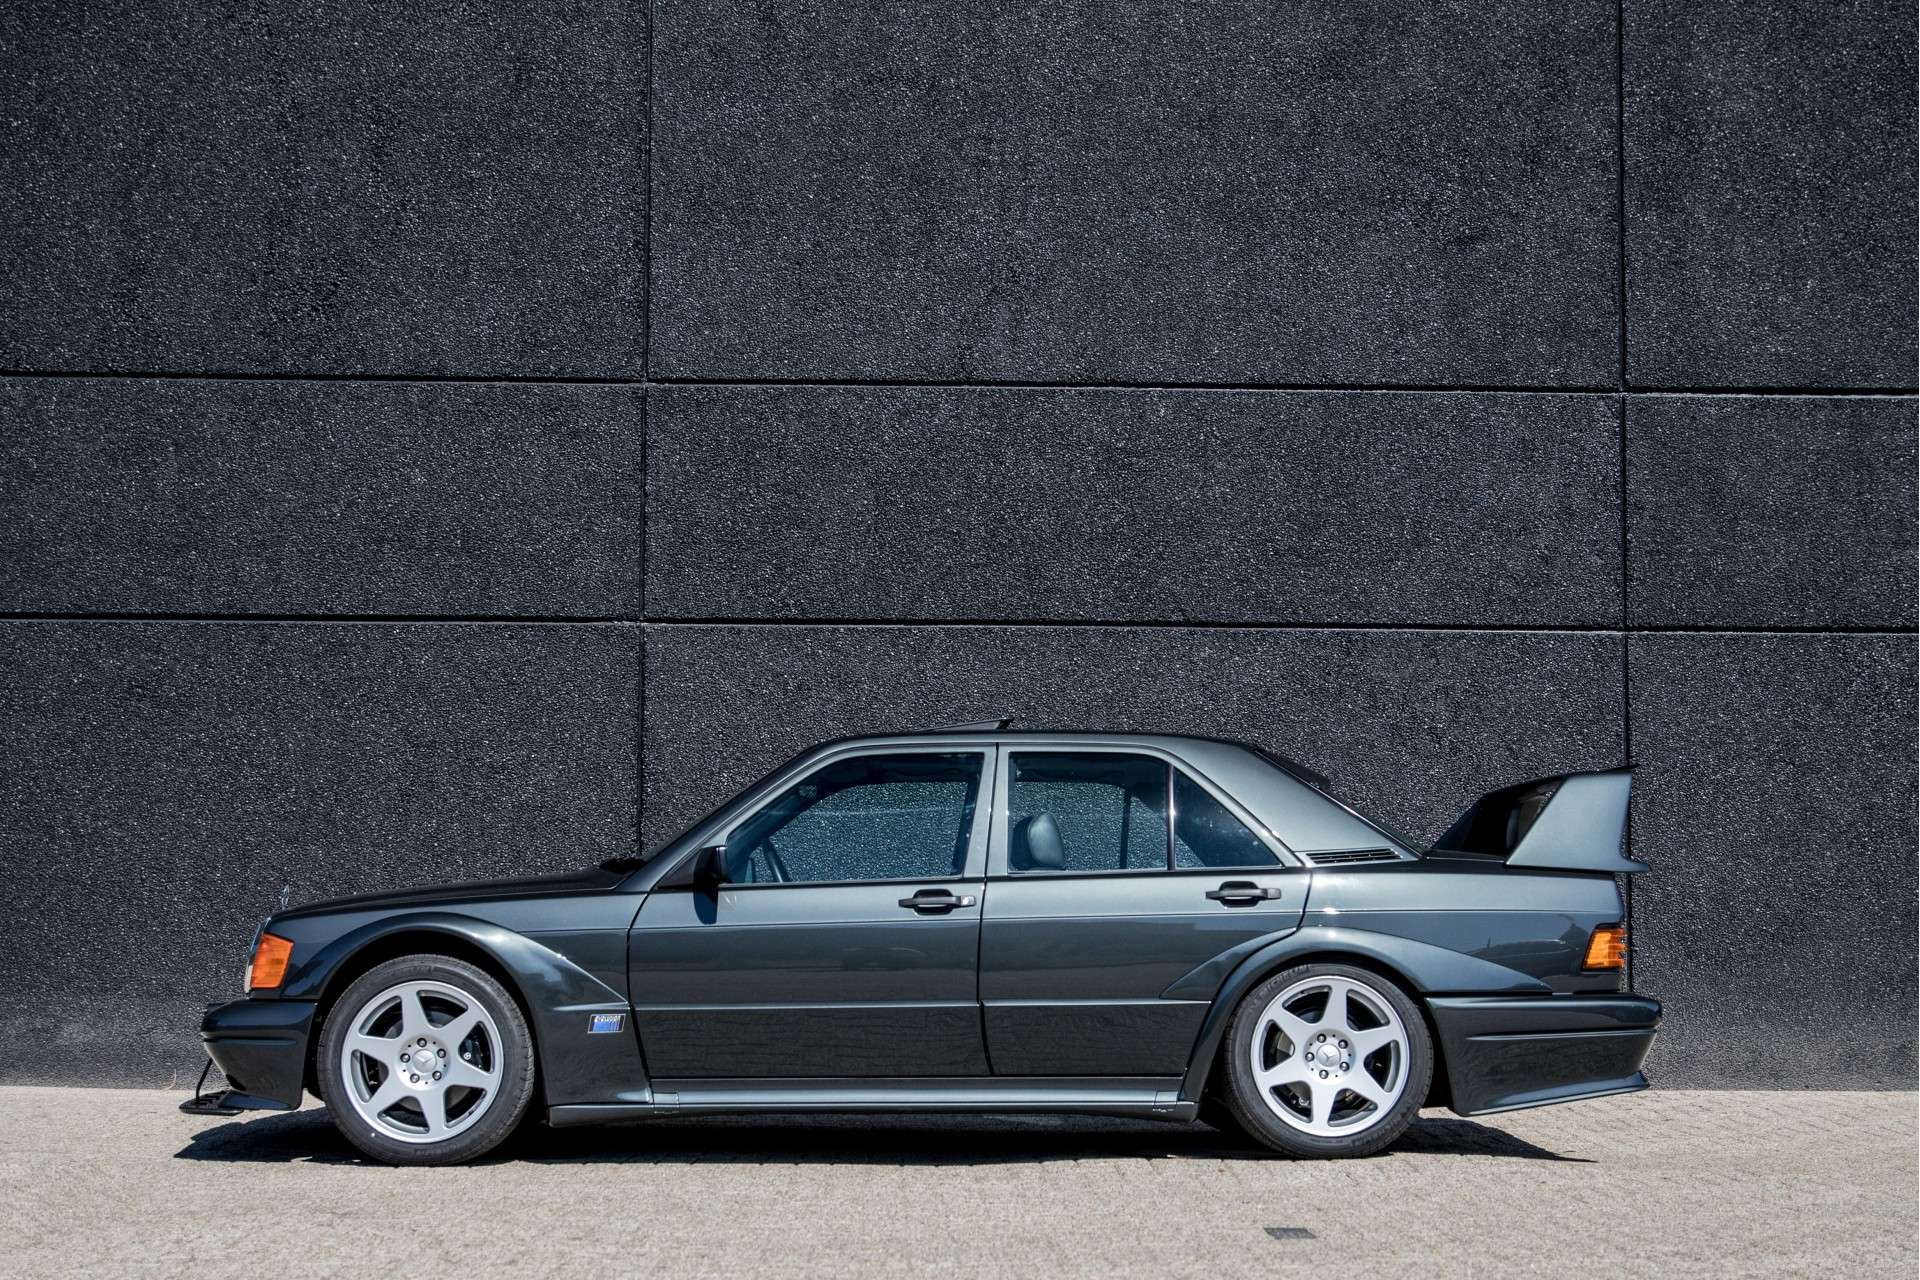 Mercedes_190_E_2.5-16_Evolution II_sale_08